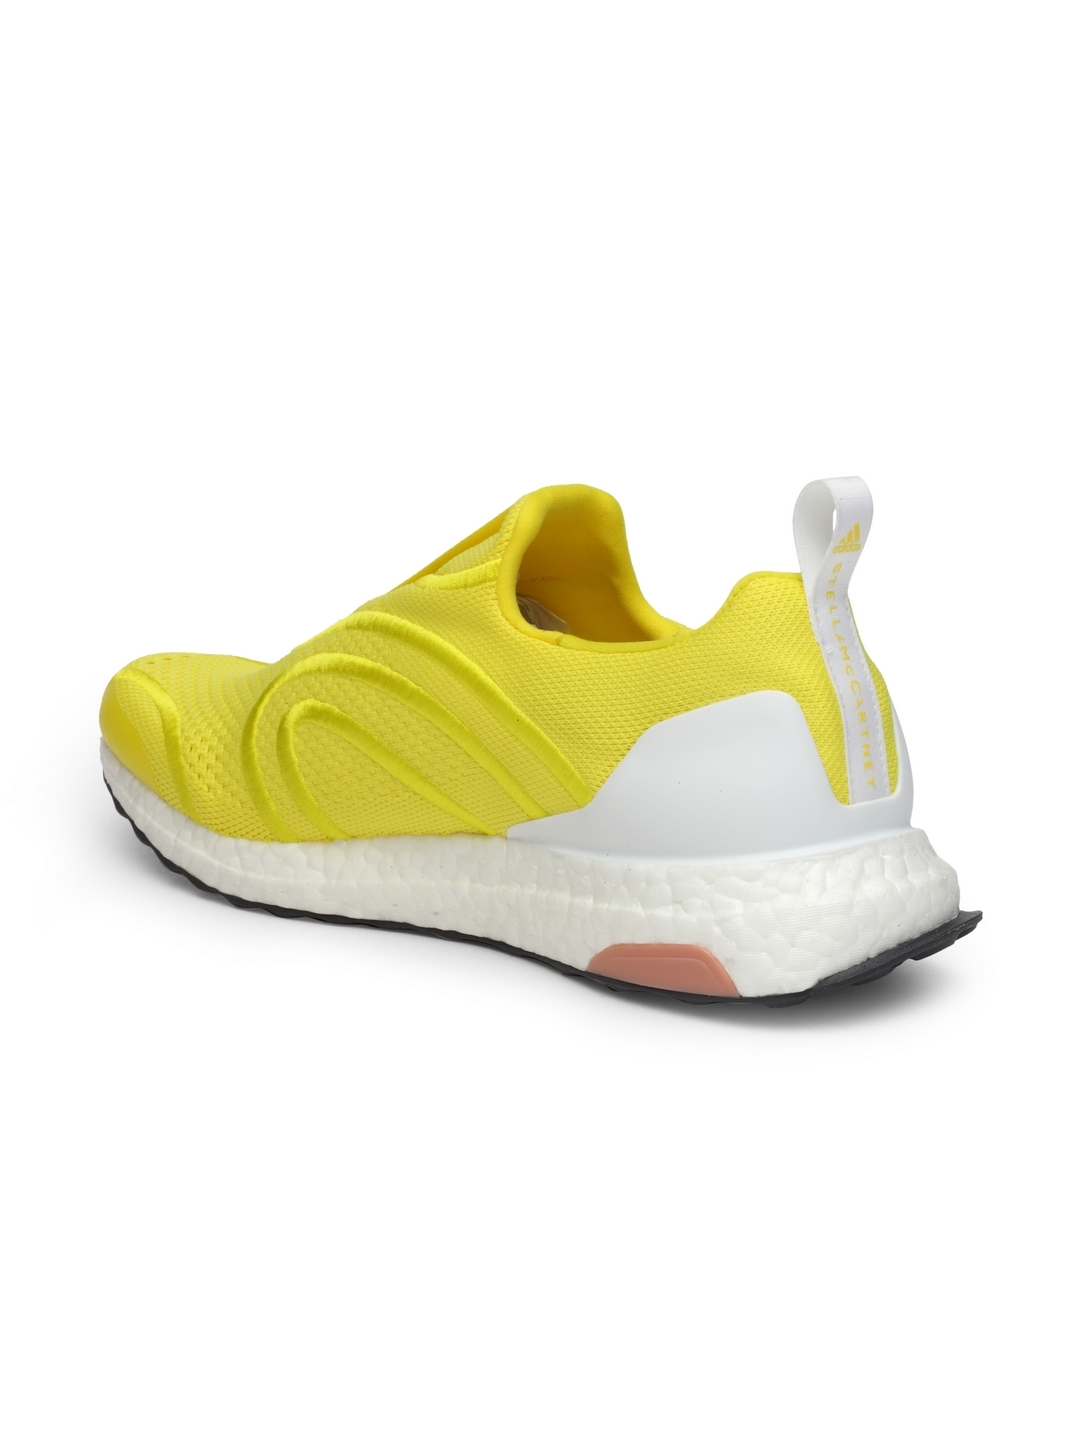 b31feaa94ad5a Stella McCartney by ADIDAS Women Yellow Ultraboost Uncaged Running Shoes